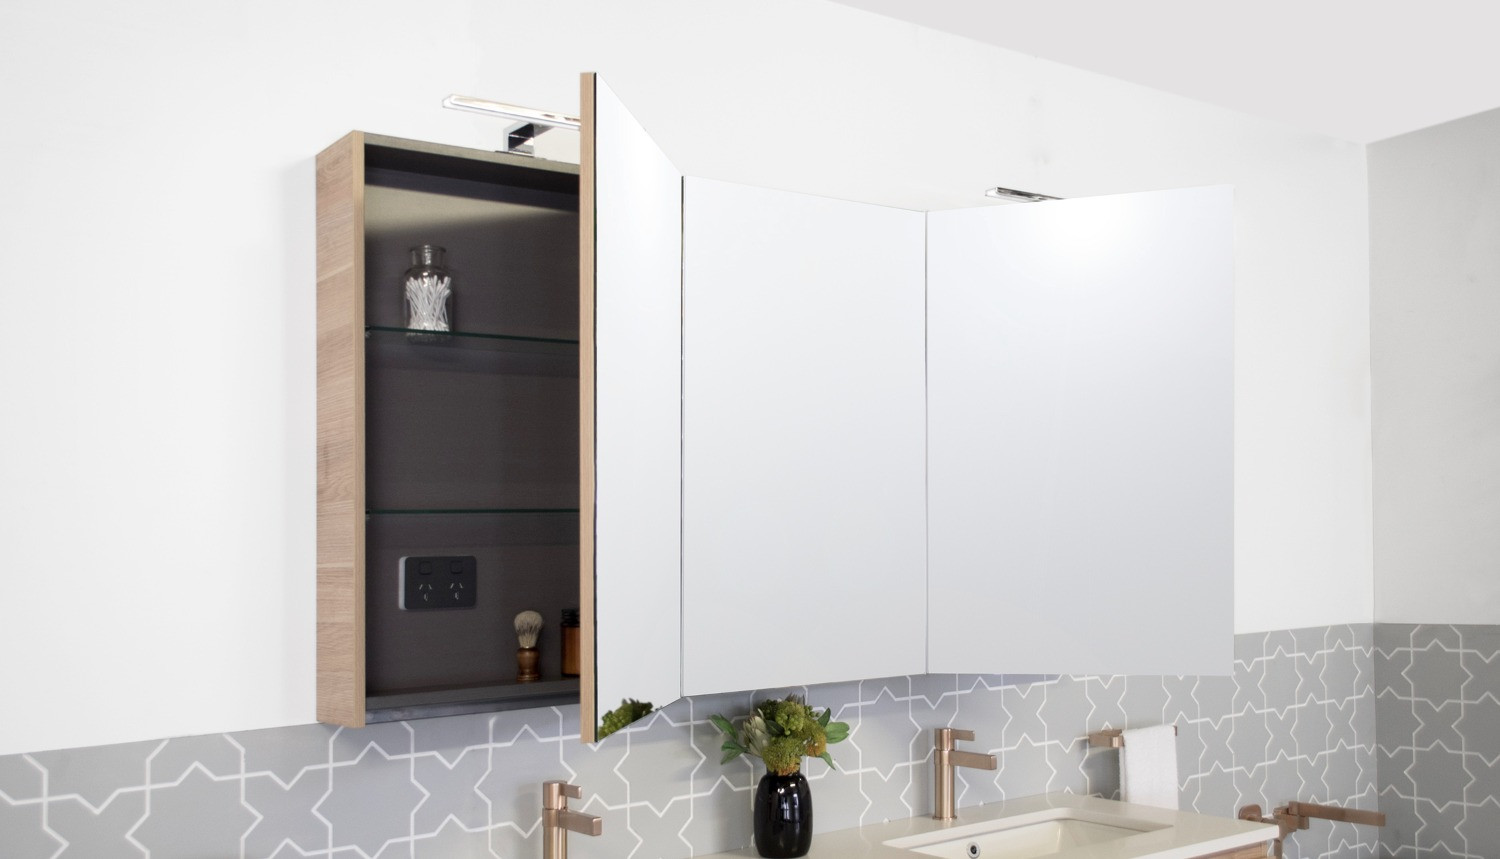 Recessed Shaving Cabinets Moonlight Shaving Cabinet Architectural Designer Products